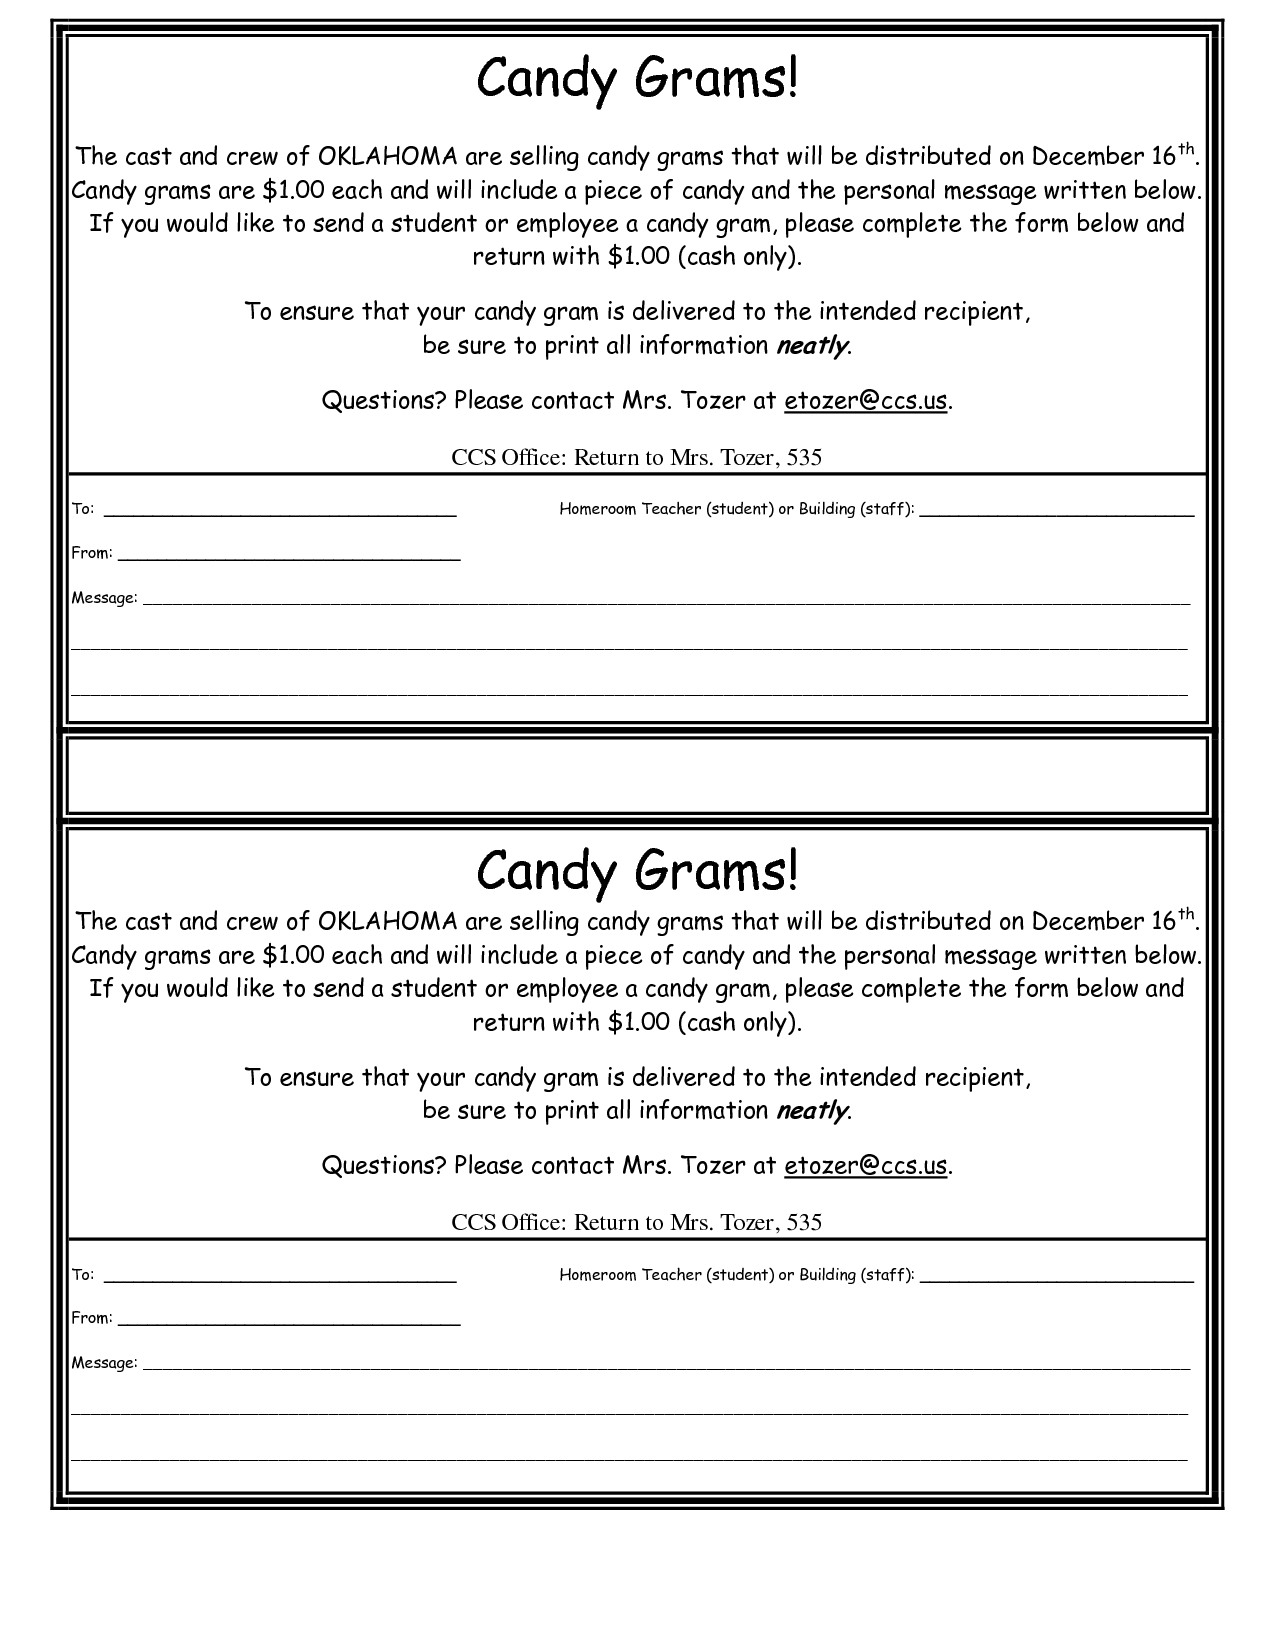 7 Best Images of Printable Candy Gram Template - Valentine ...